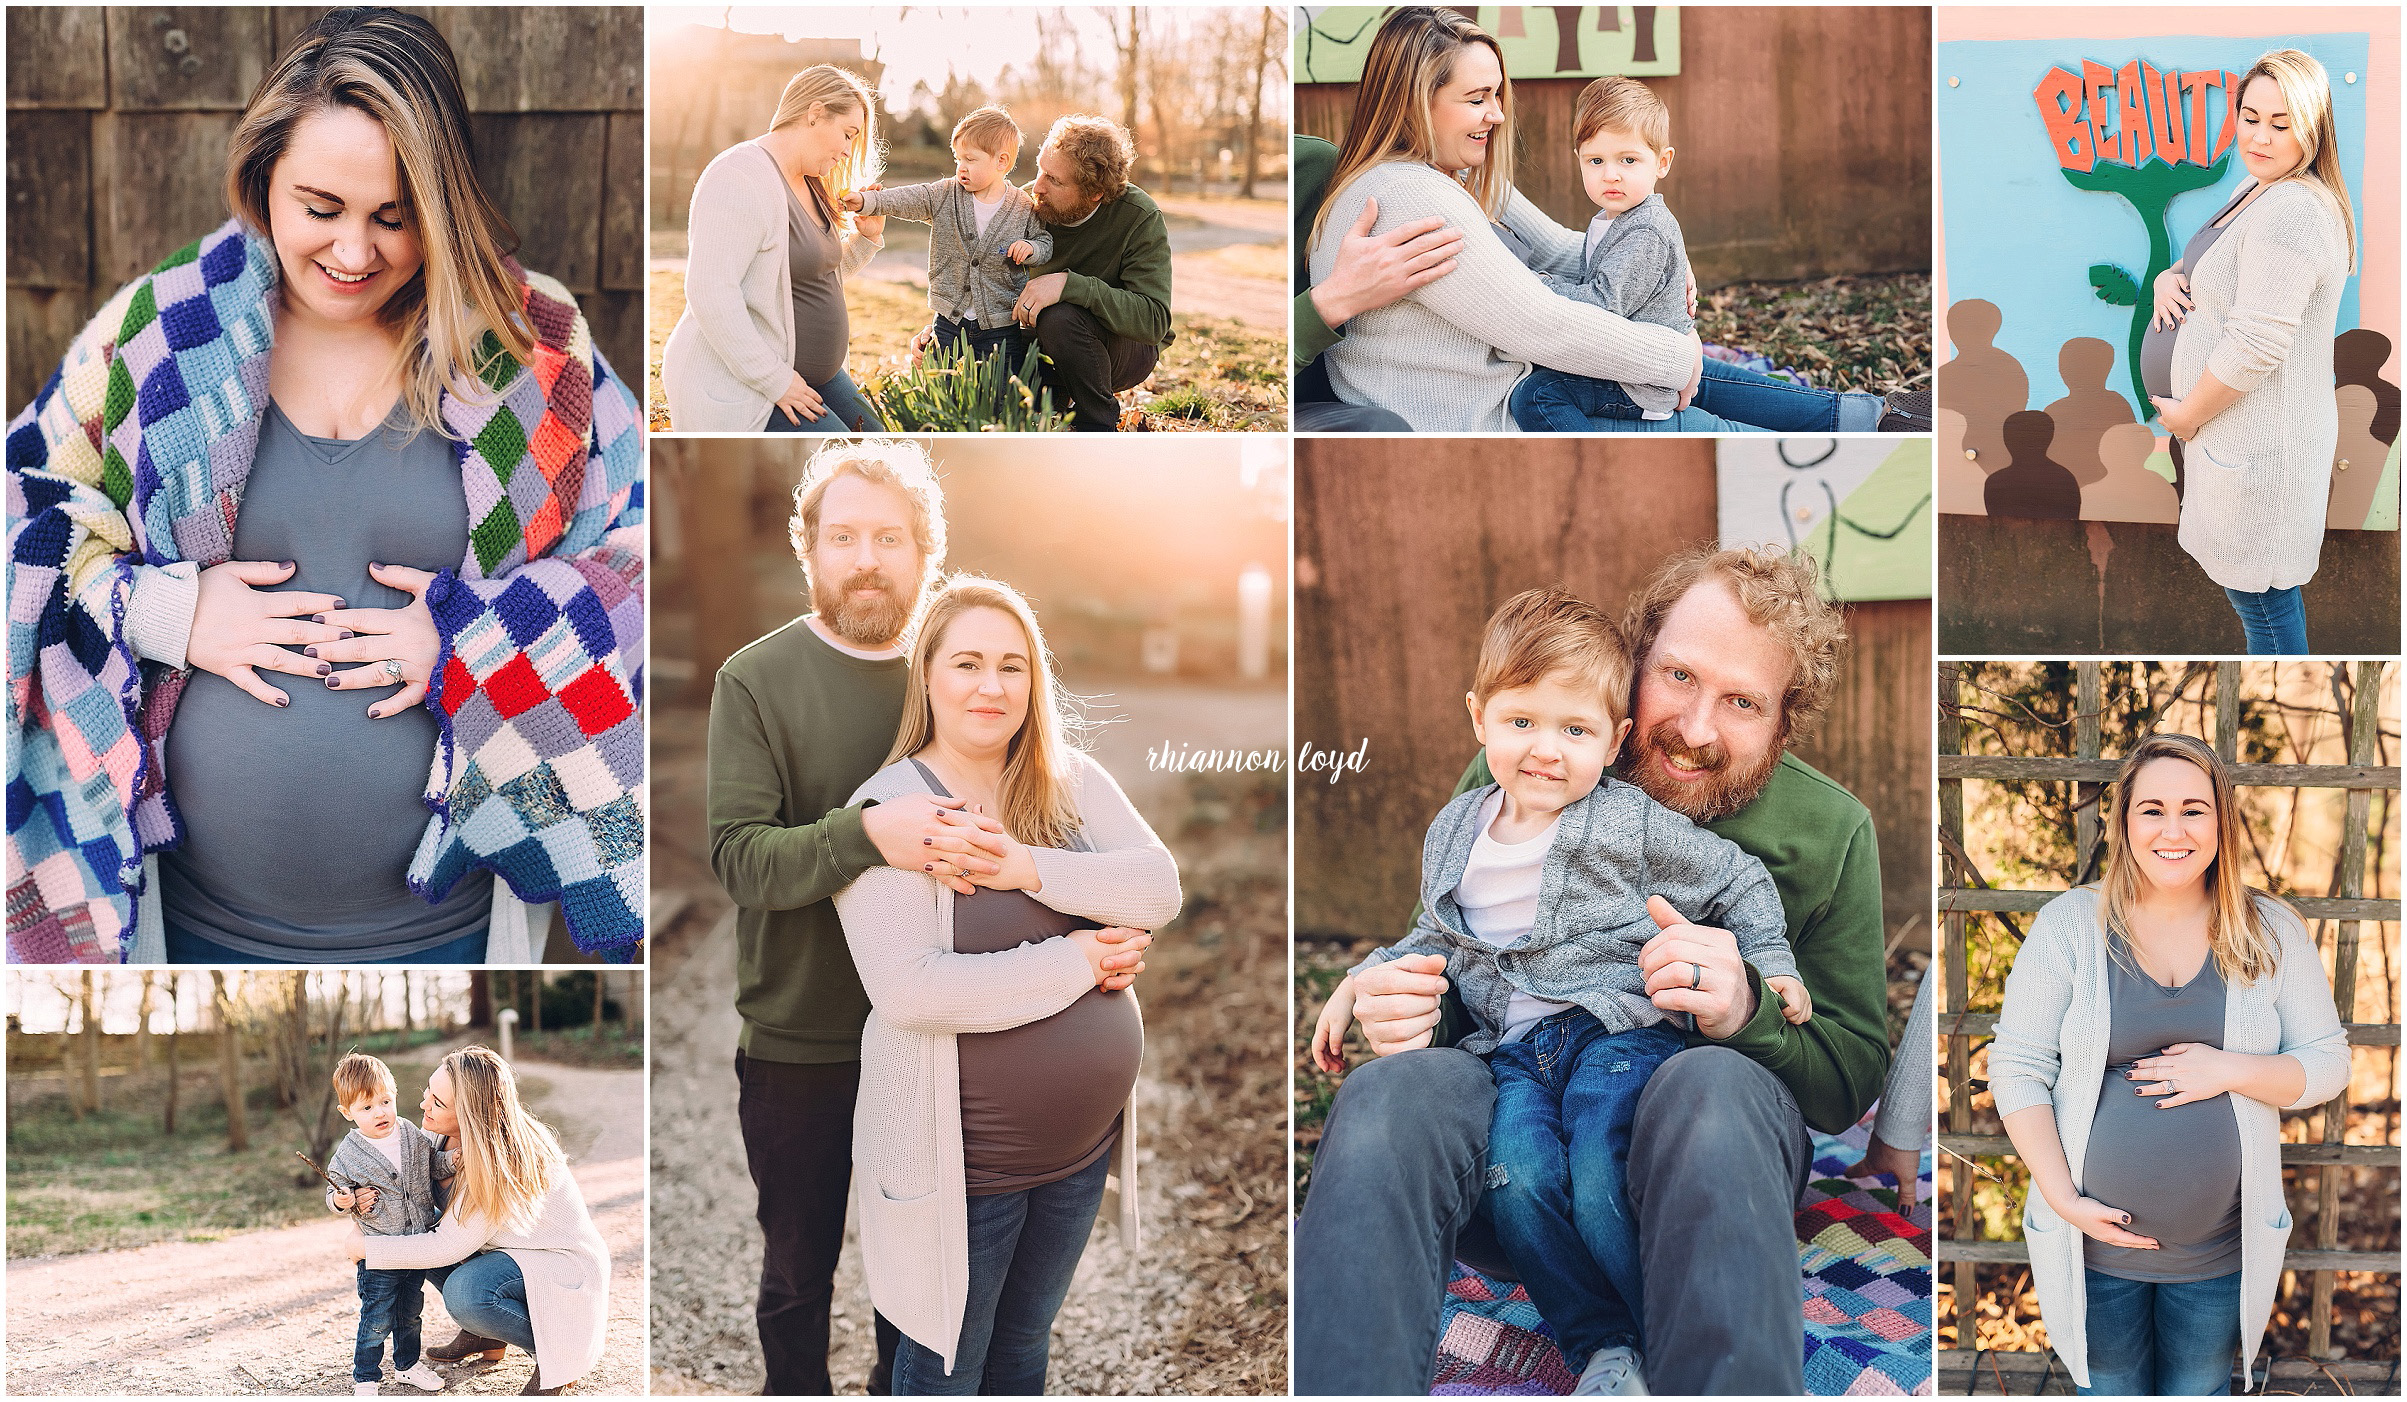 Indianapolis Family Photographer | Rhiannon Loyd Photography